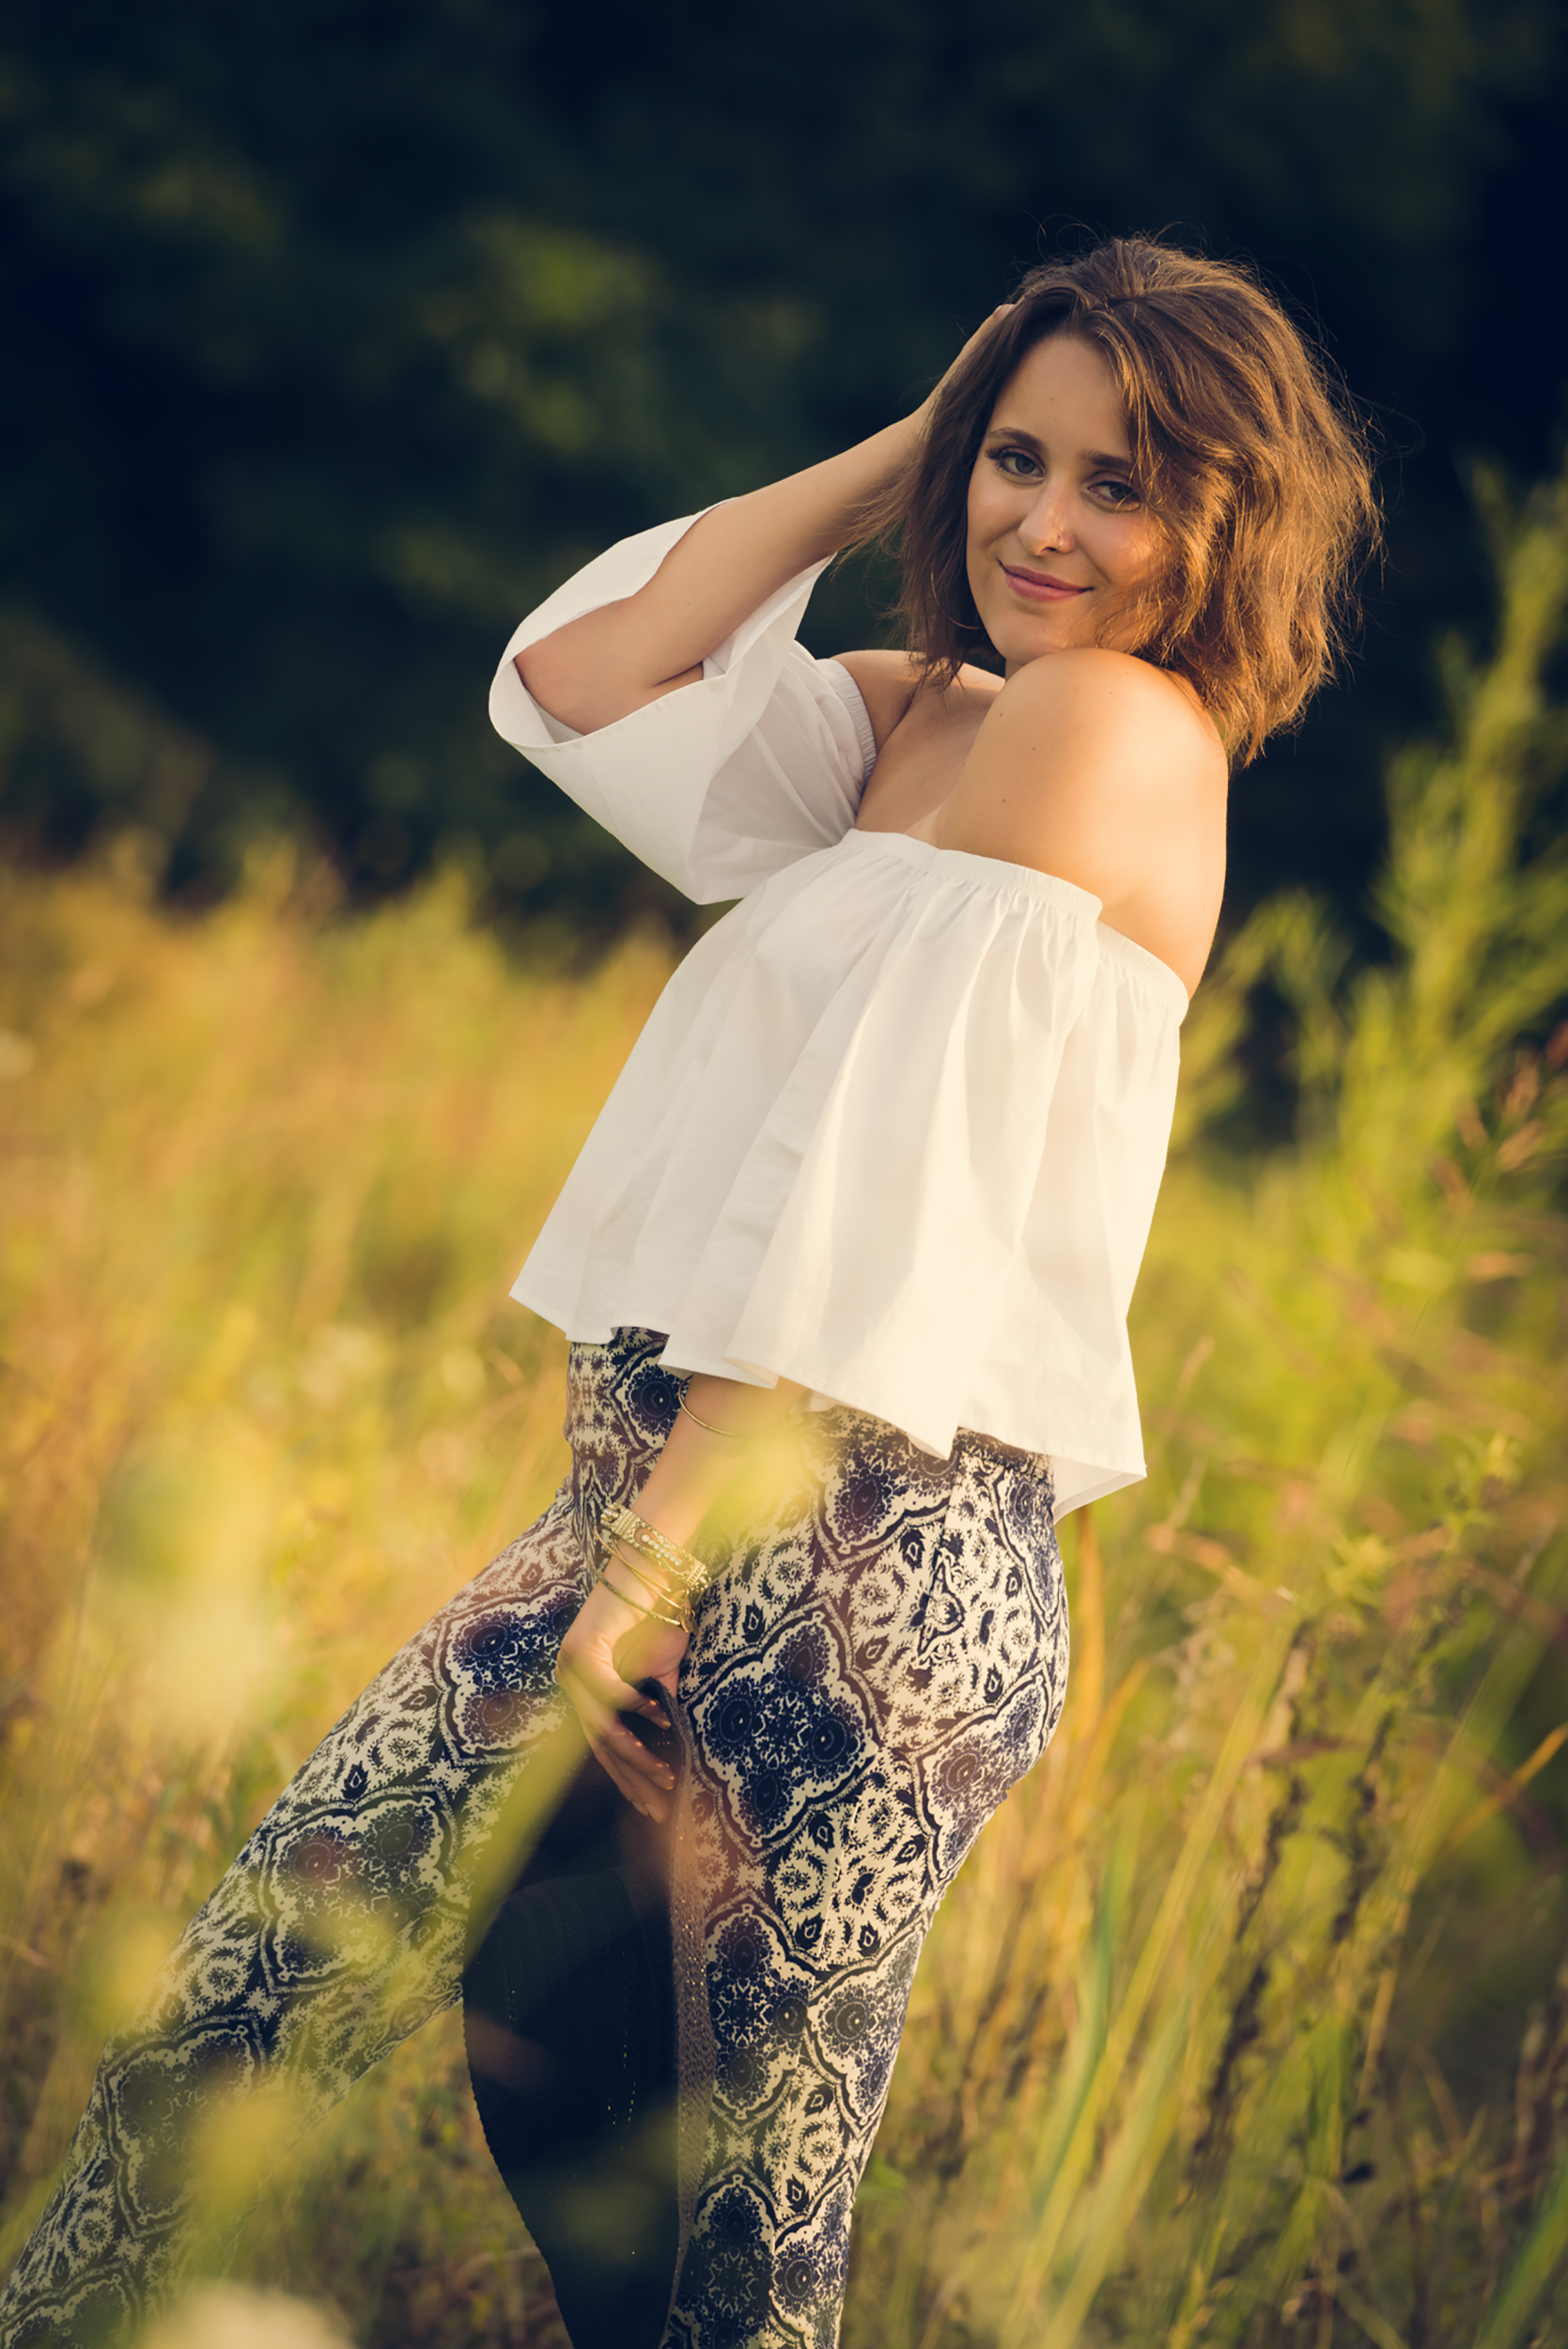 Boho-Flower-Fields-Senior-Portraits-Senior-Pictures-Brookville-Indiana-Julie-G-Photography